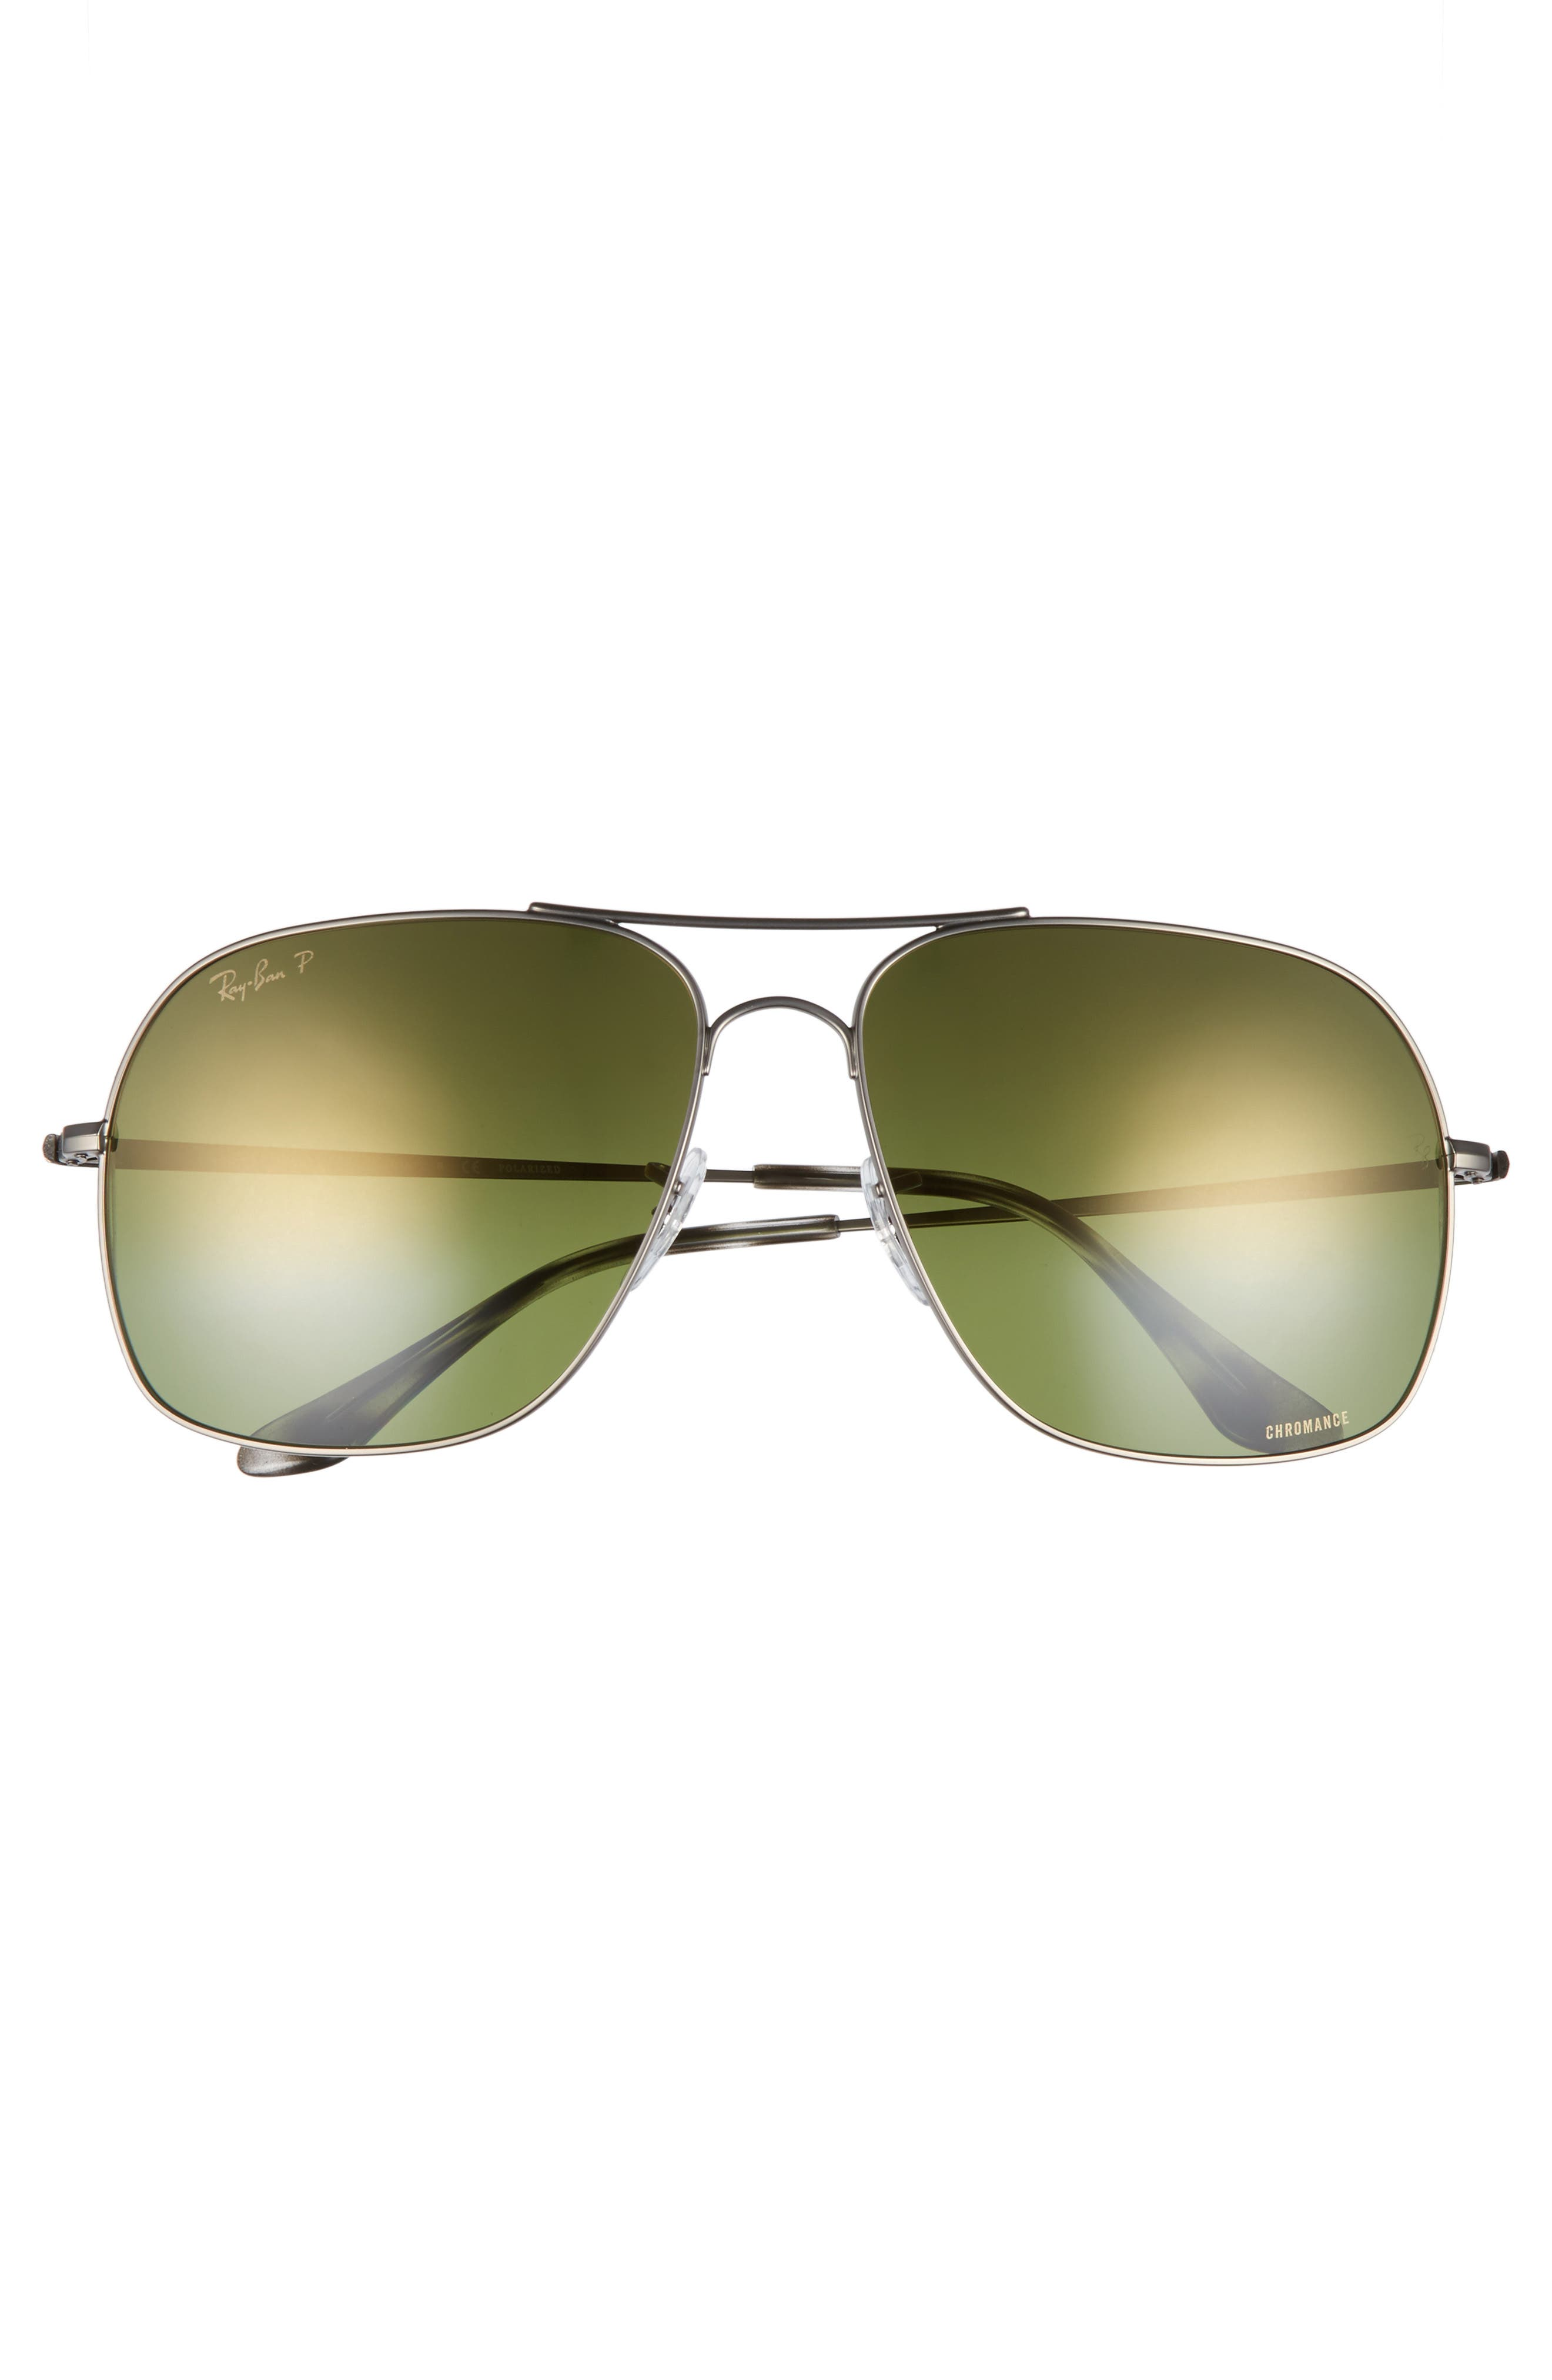 Chromance 61mm Double Bridge Aviator Sunglasses,                             Alternate thumbnail 2, color,                             GUNMETAL/ GREEN